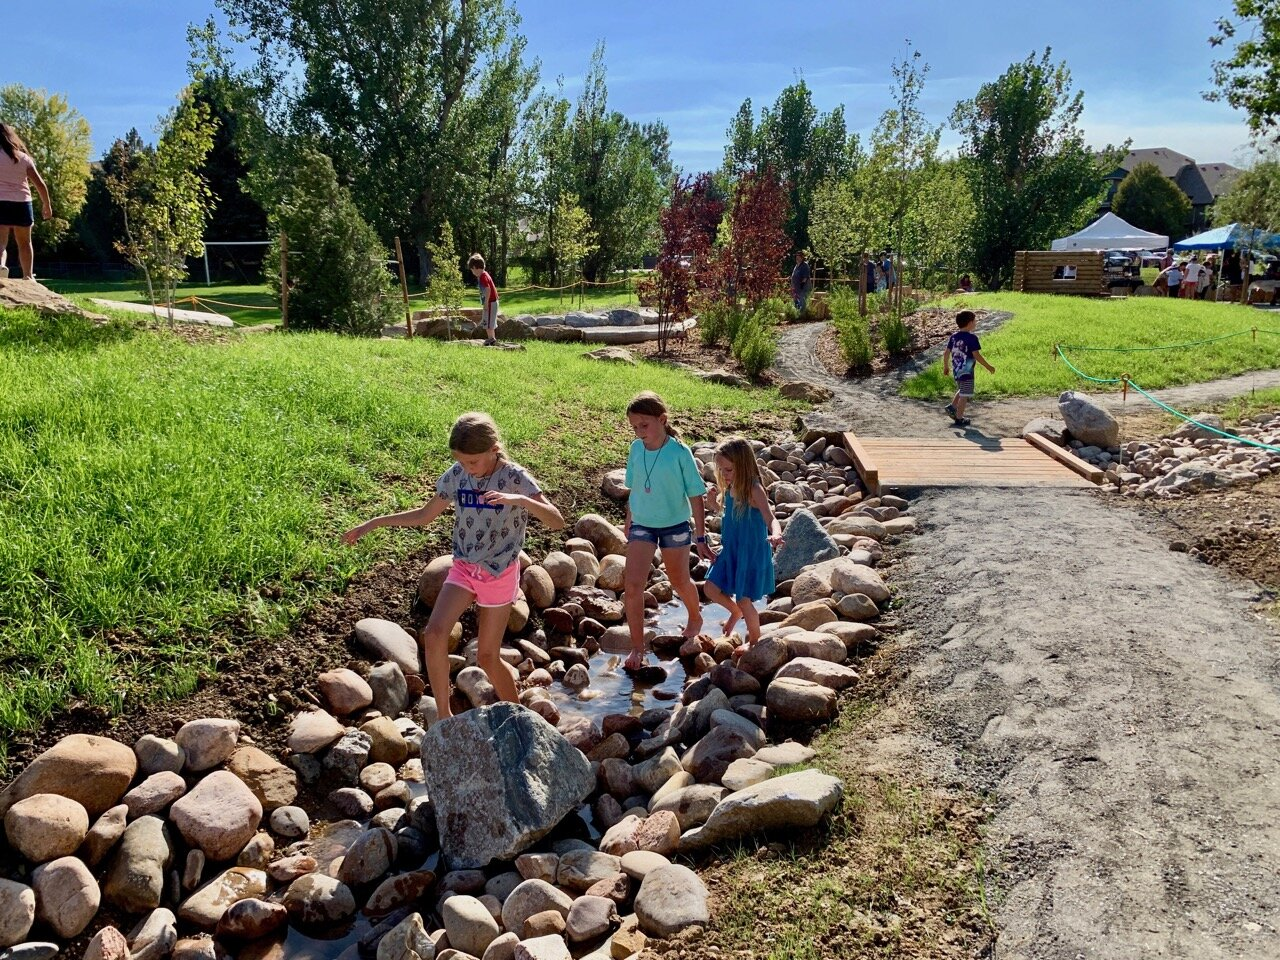 A great example of nature play is these kids splashing through a stream water feature at Nature Discovery Area & Inspire Trail in Lafayette, Colorado